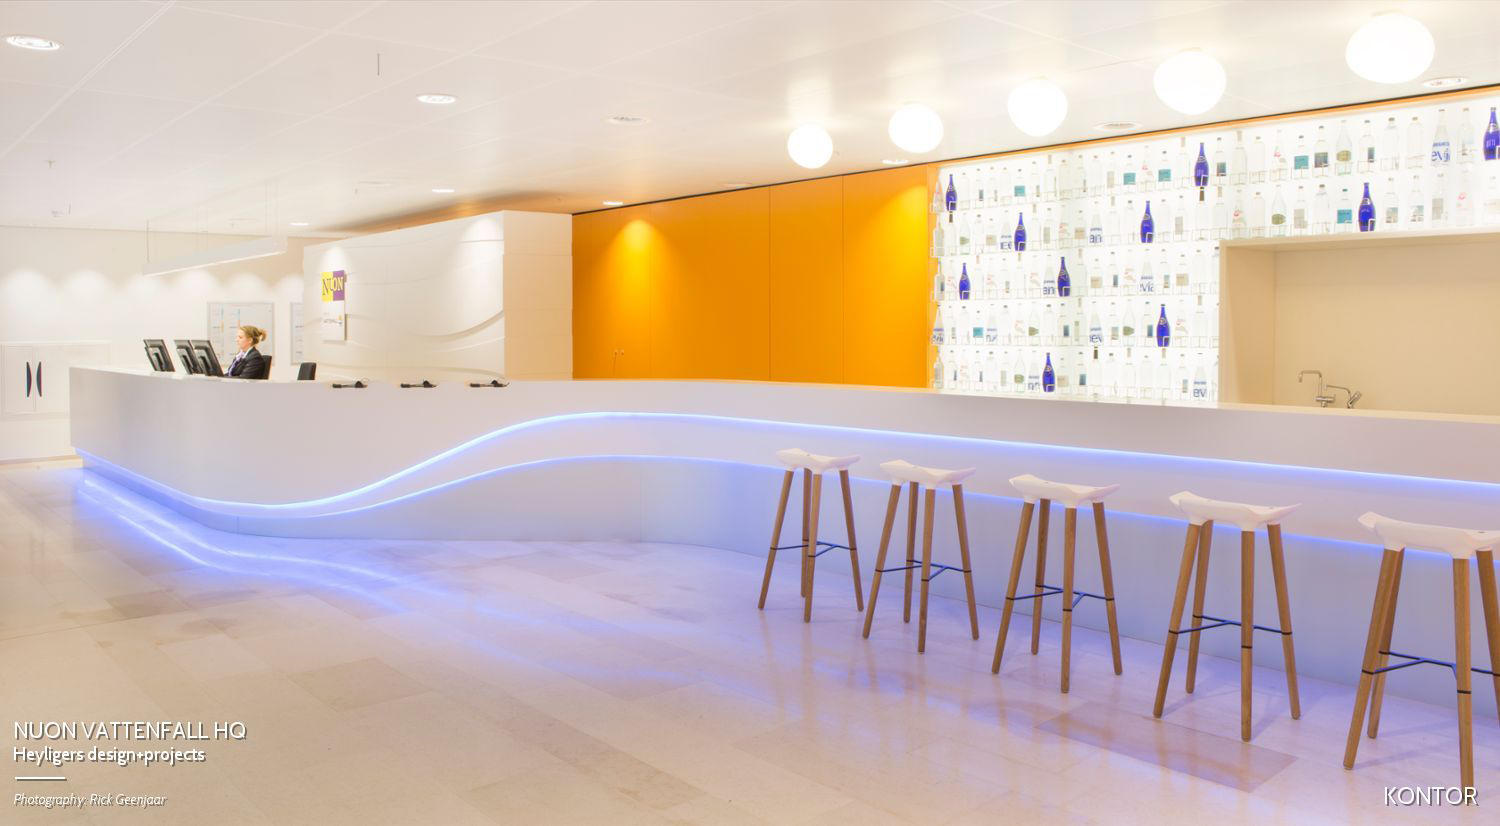 Nuon office heyligers design Office Space Ambient Images Prooff Workspace Furniture Design Shaping The Future Of Work Pilot Bar Stool Bar Stools From Quinze Milan Architonic